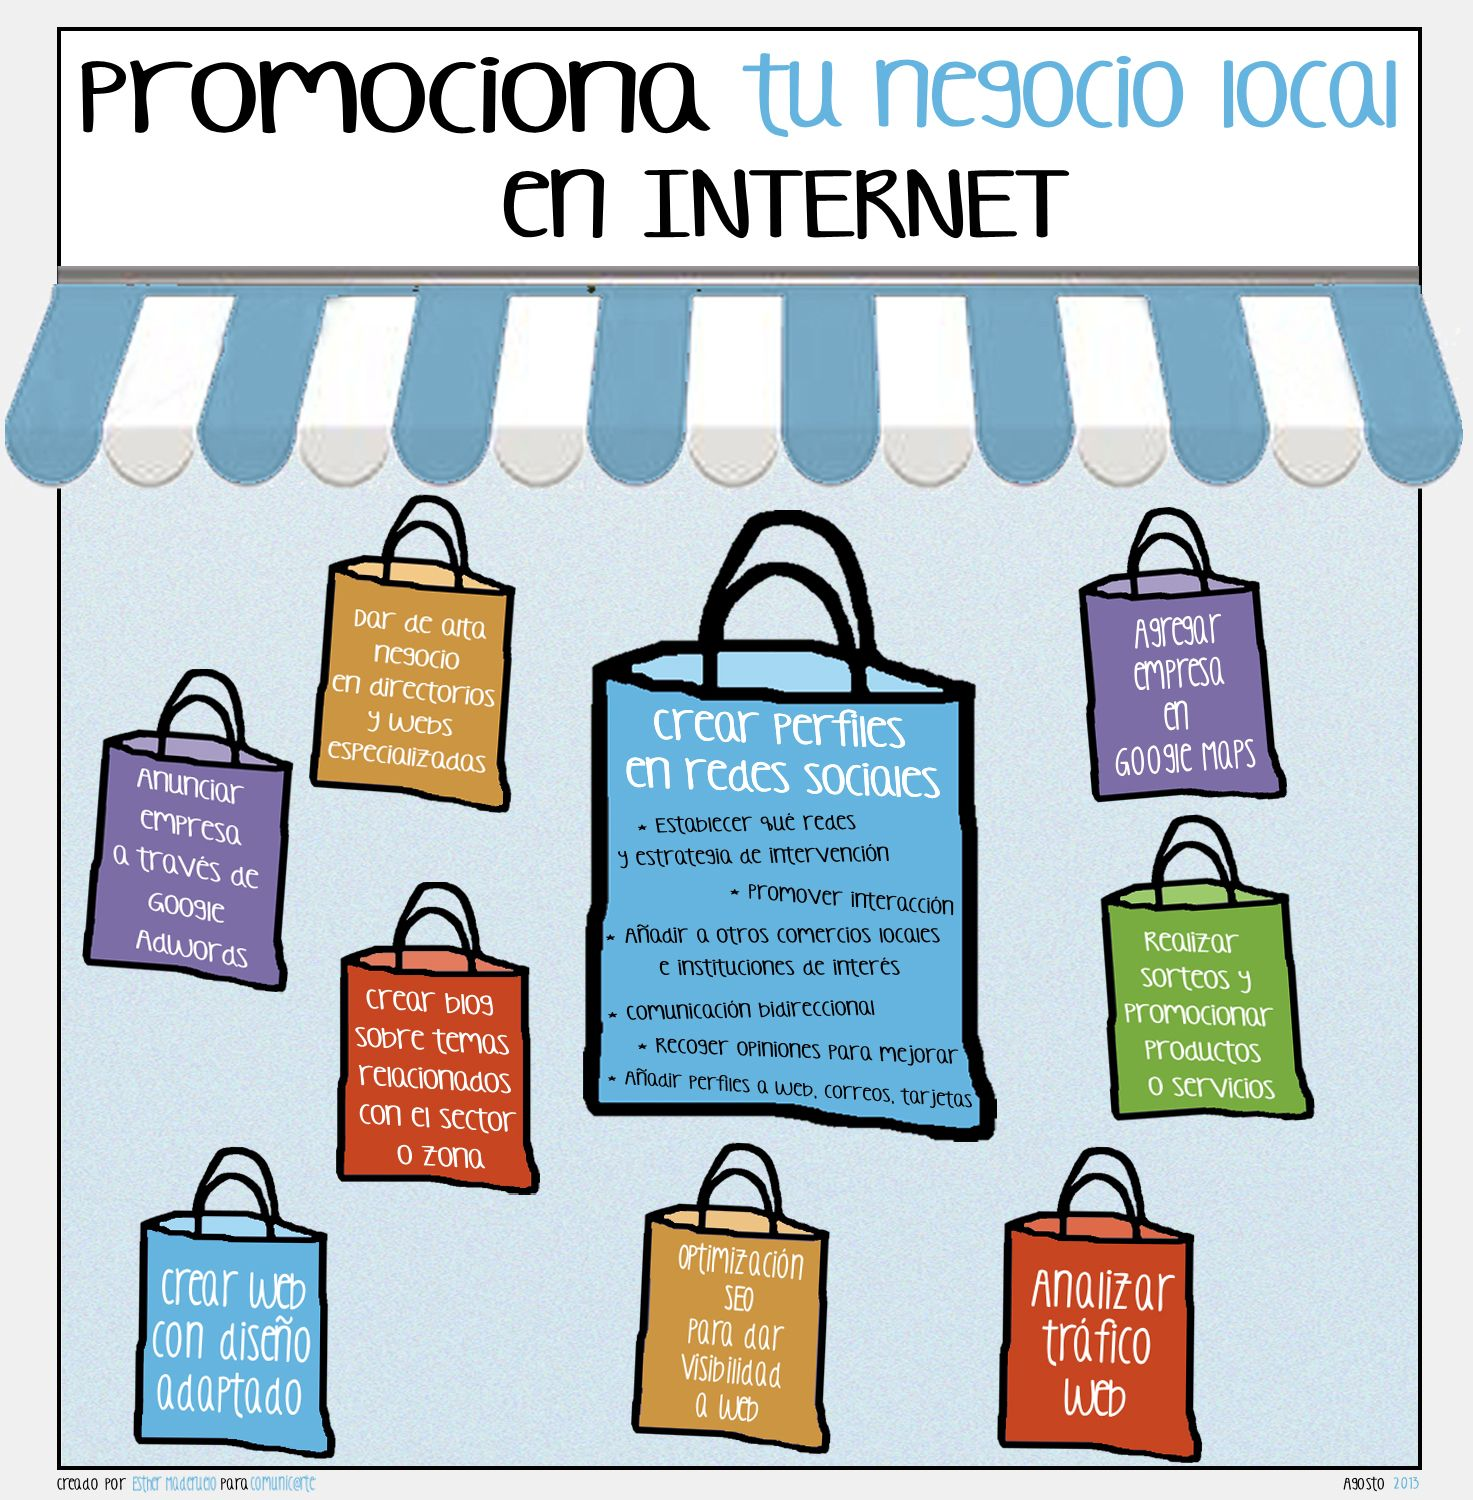 Promociona tu negocio local en Internet